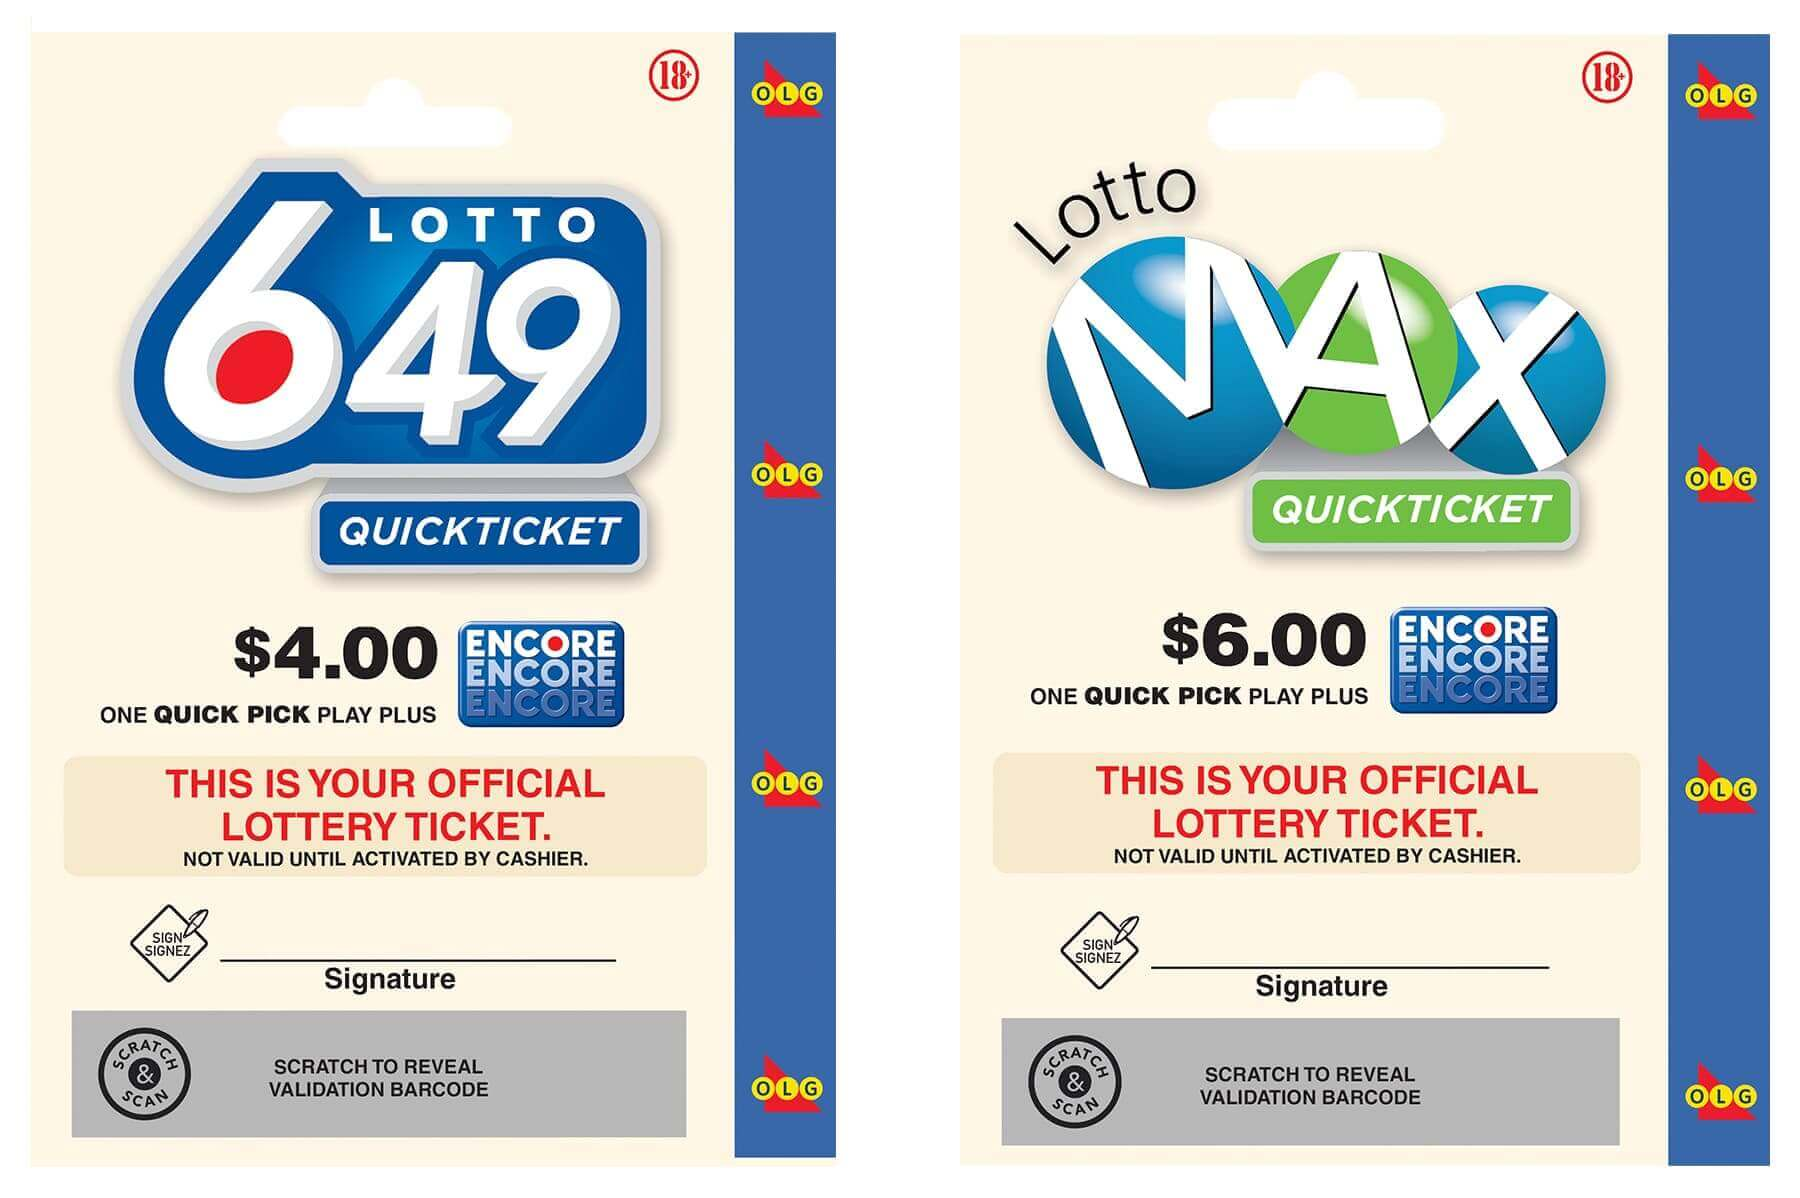 How Many Numbers To Win Lotto 649